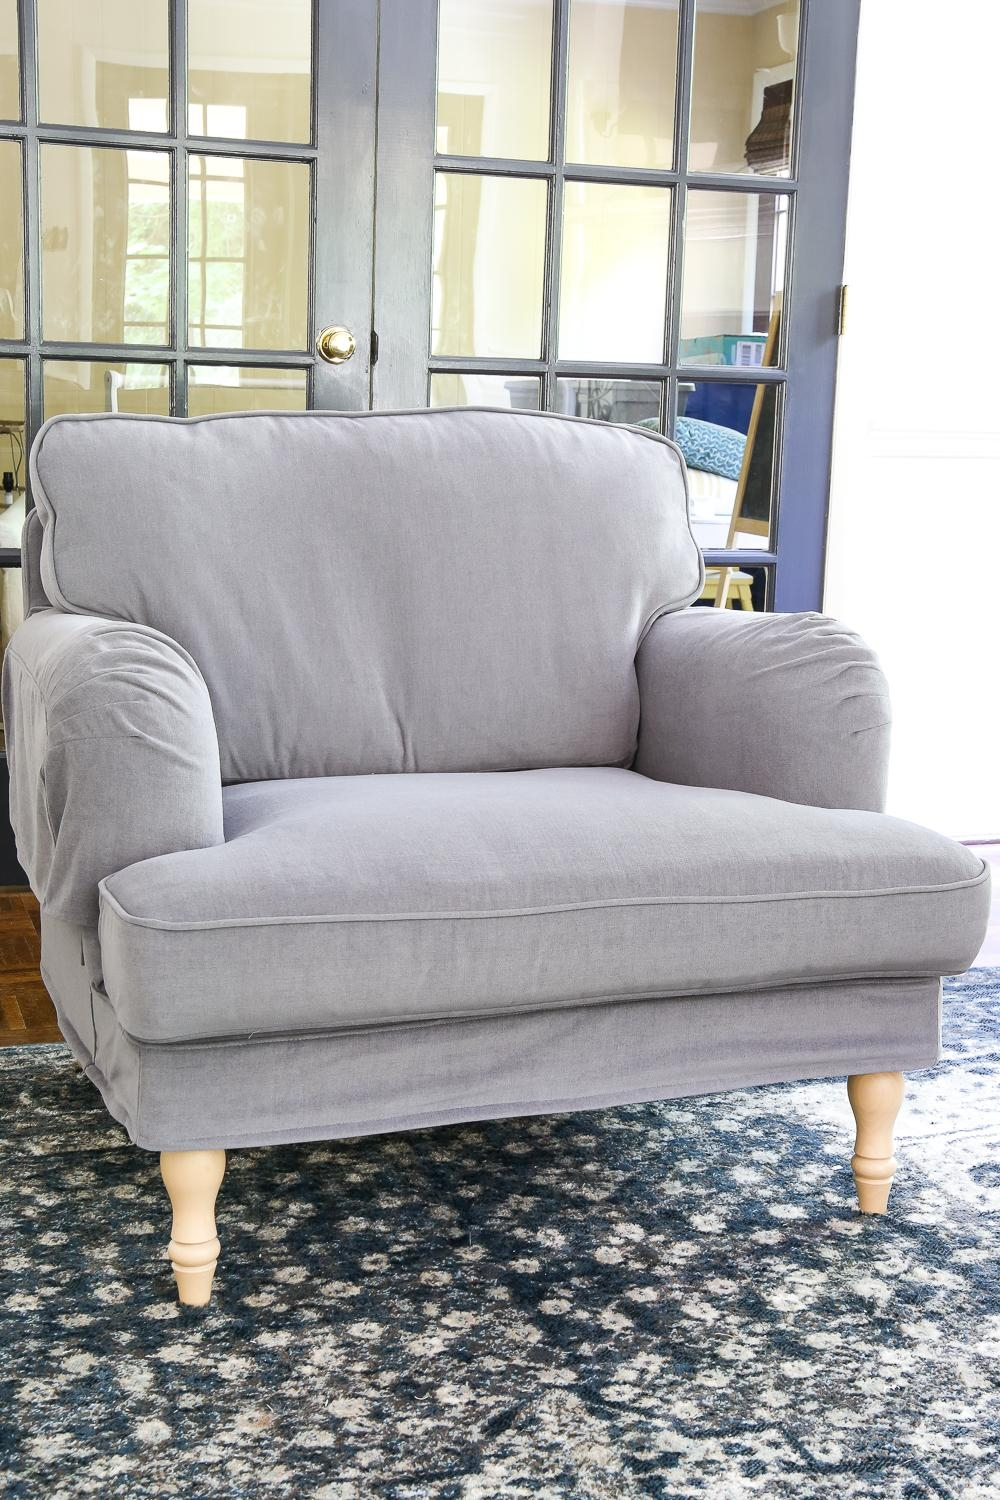 Ikea's New Sofa And Chairs And How To Keep Them Clean – Bless'er House Intended For Comfortable Sofas And Chairs (Image 8 of 20)